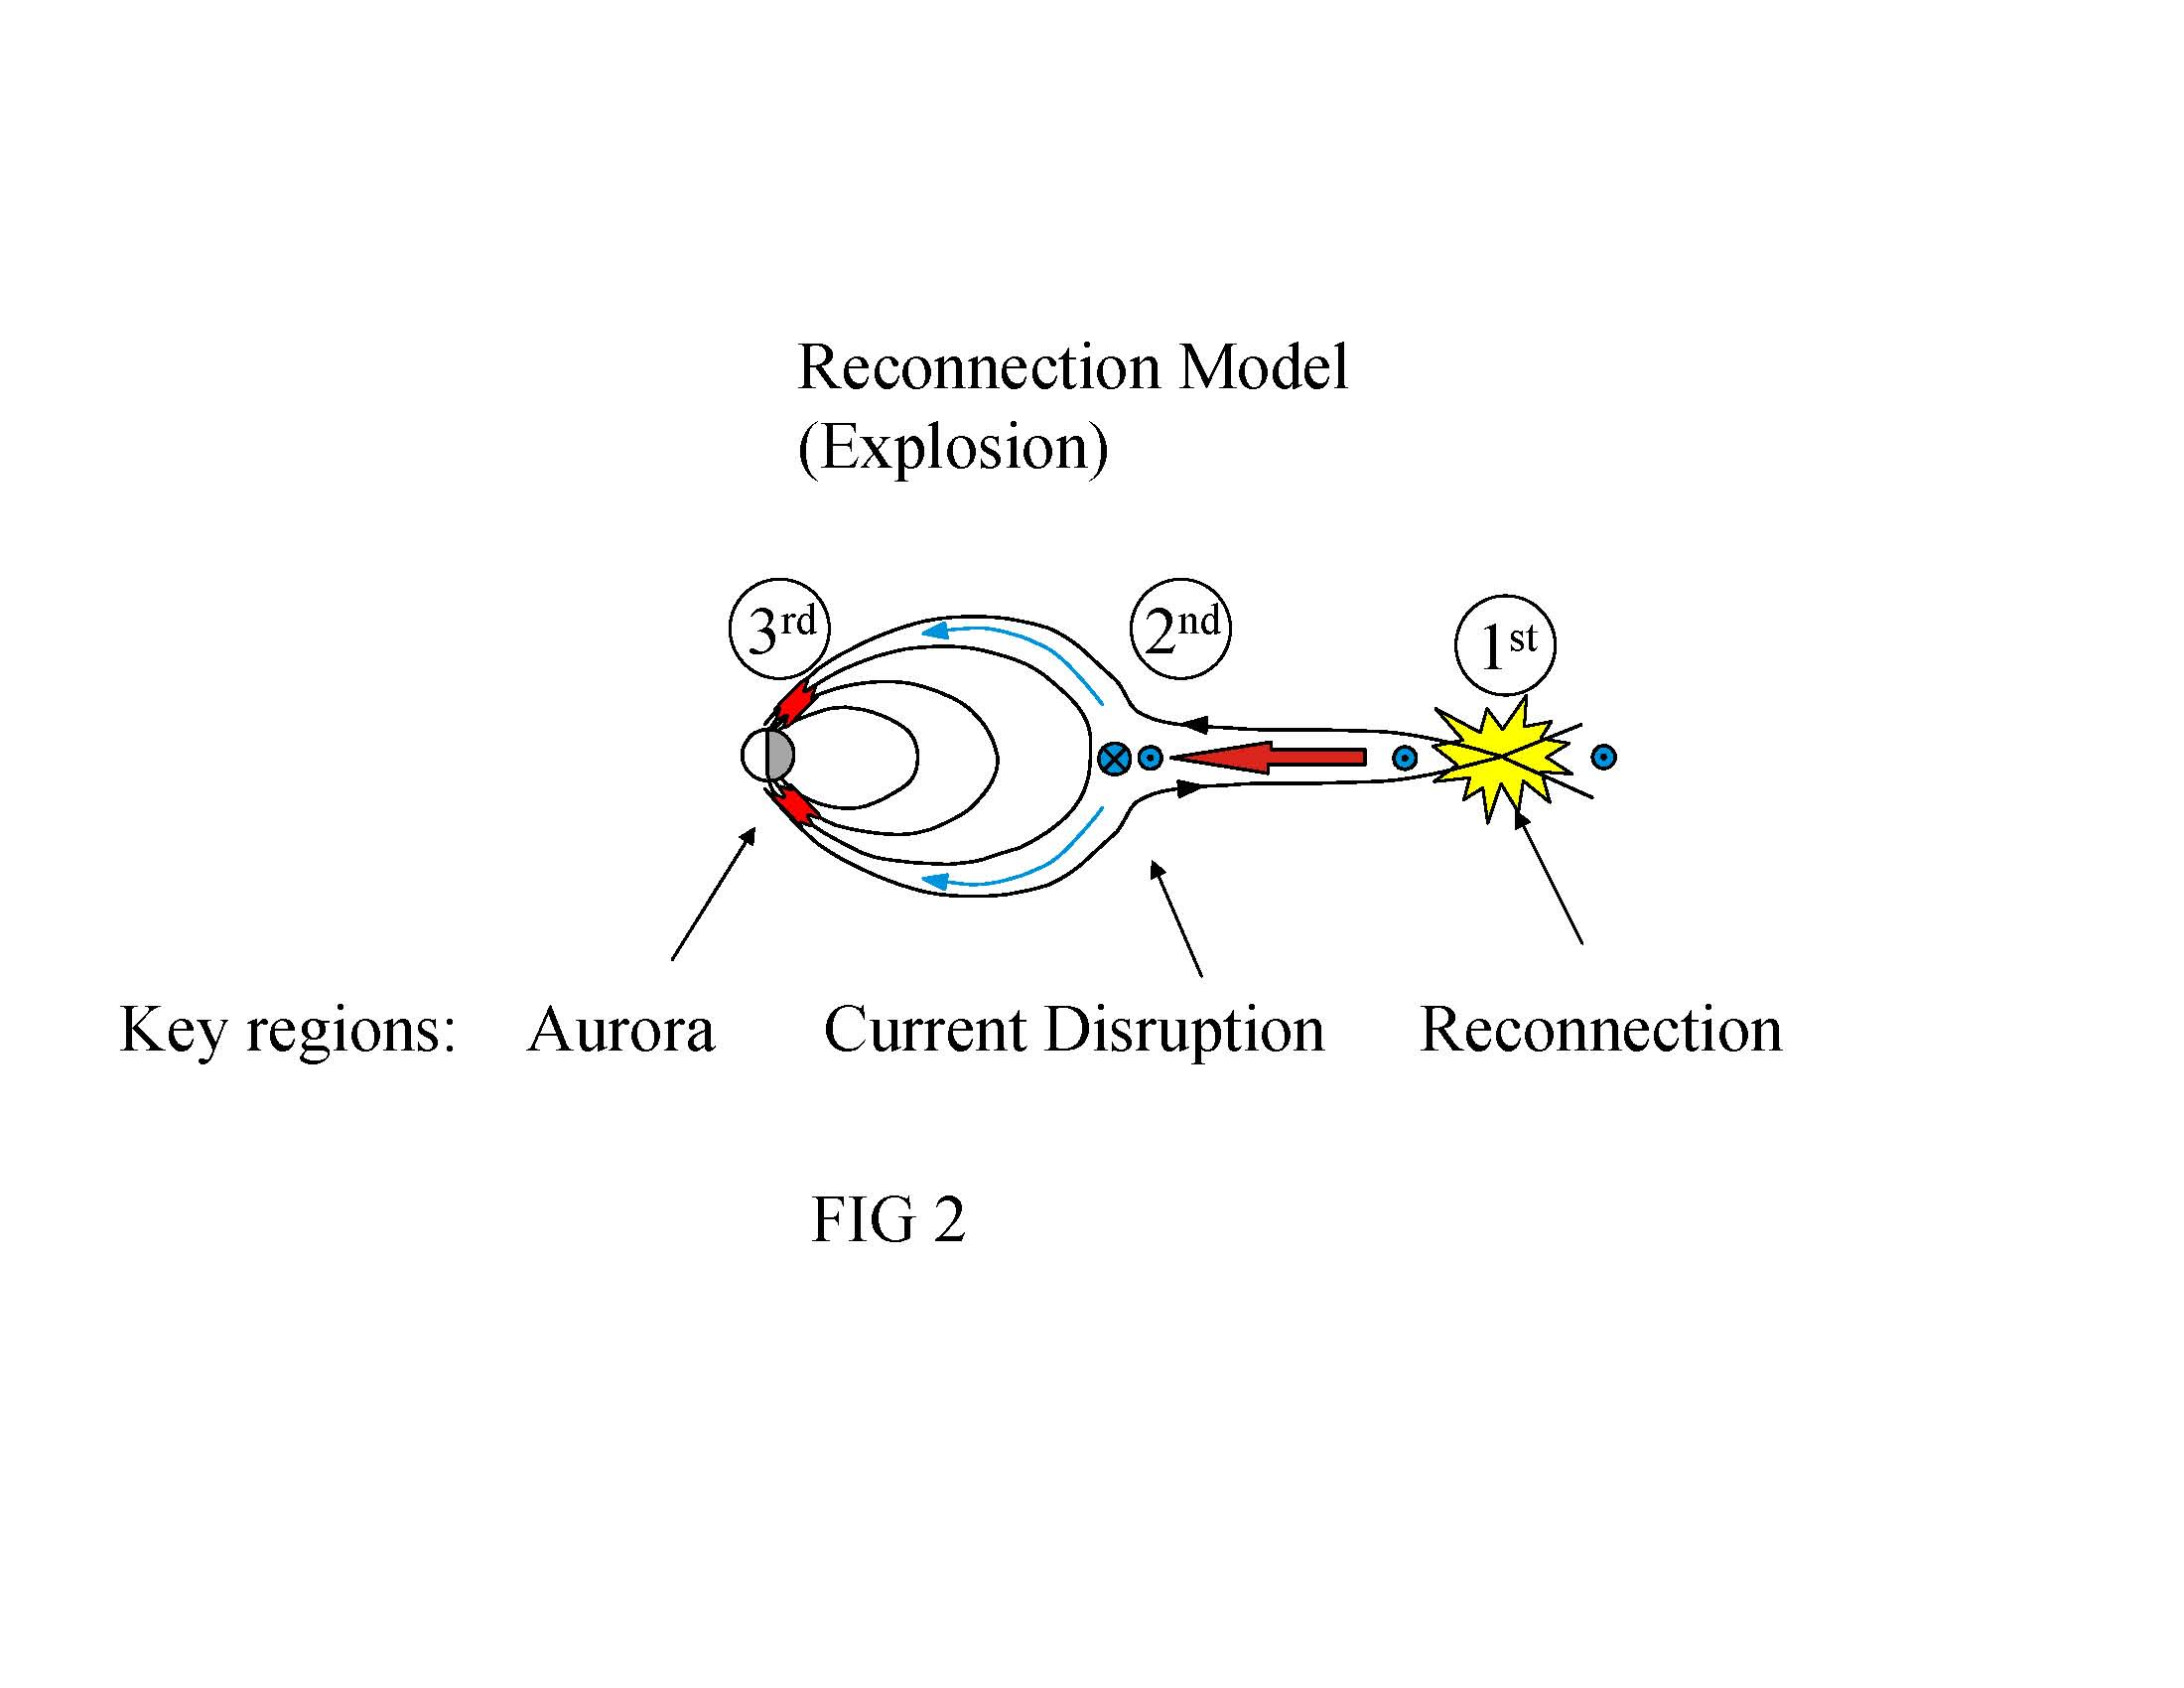 The reconnection model of a substorm